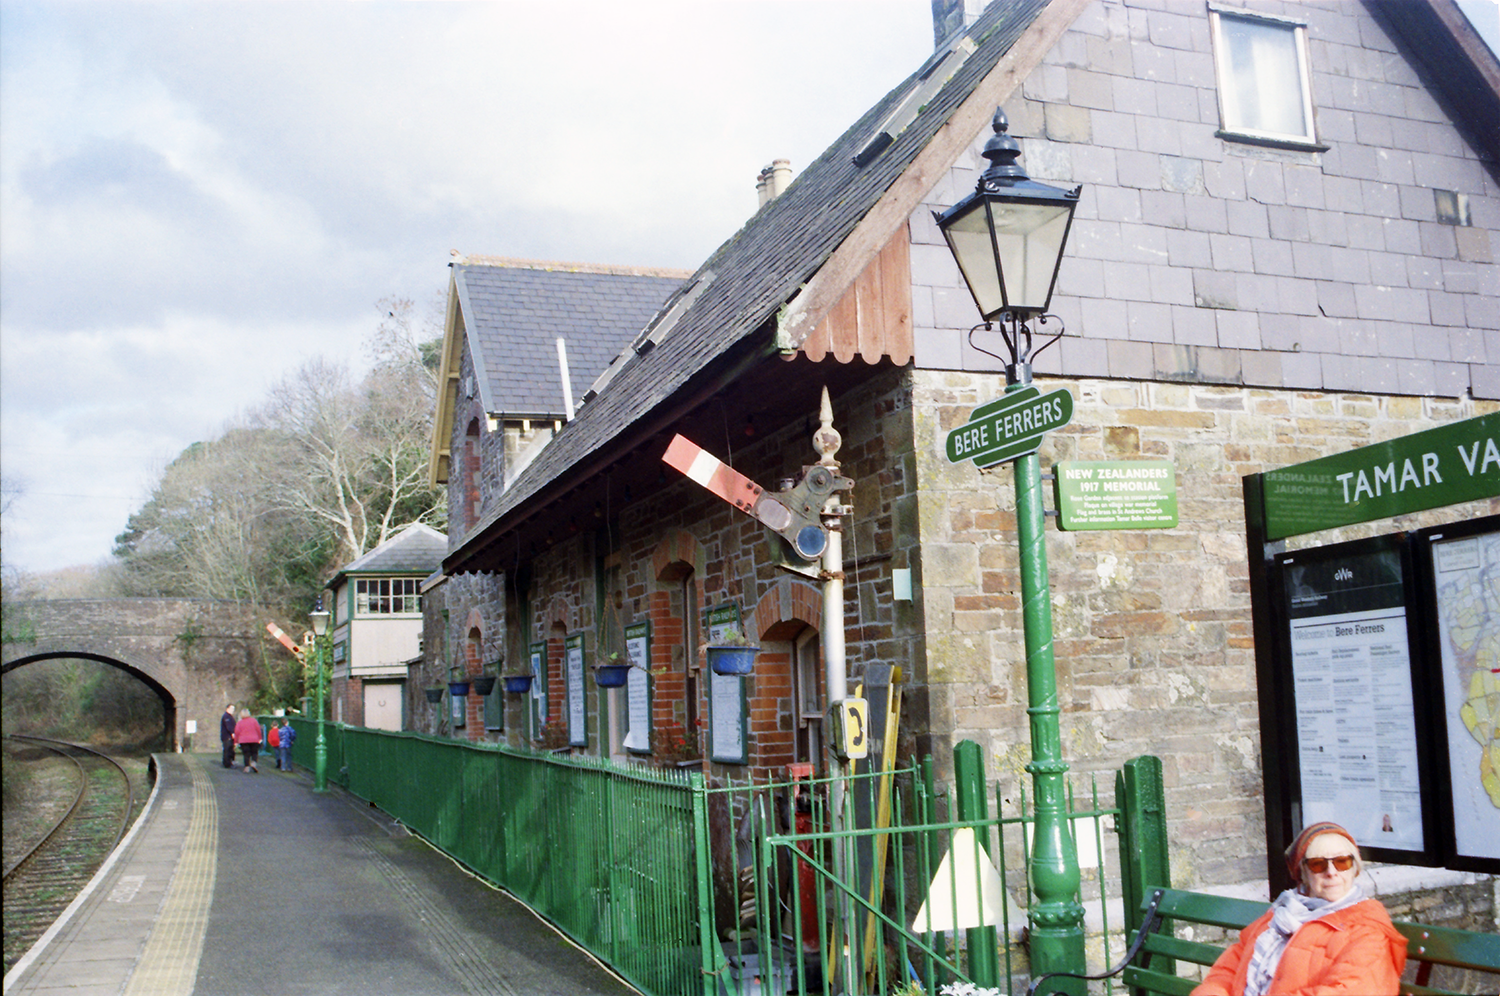 Bere Ferrers Station